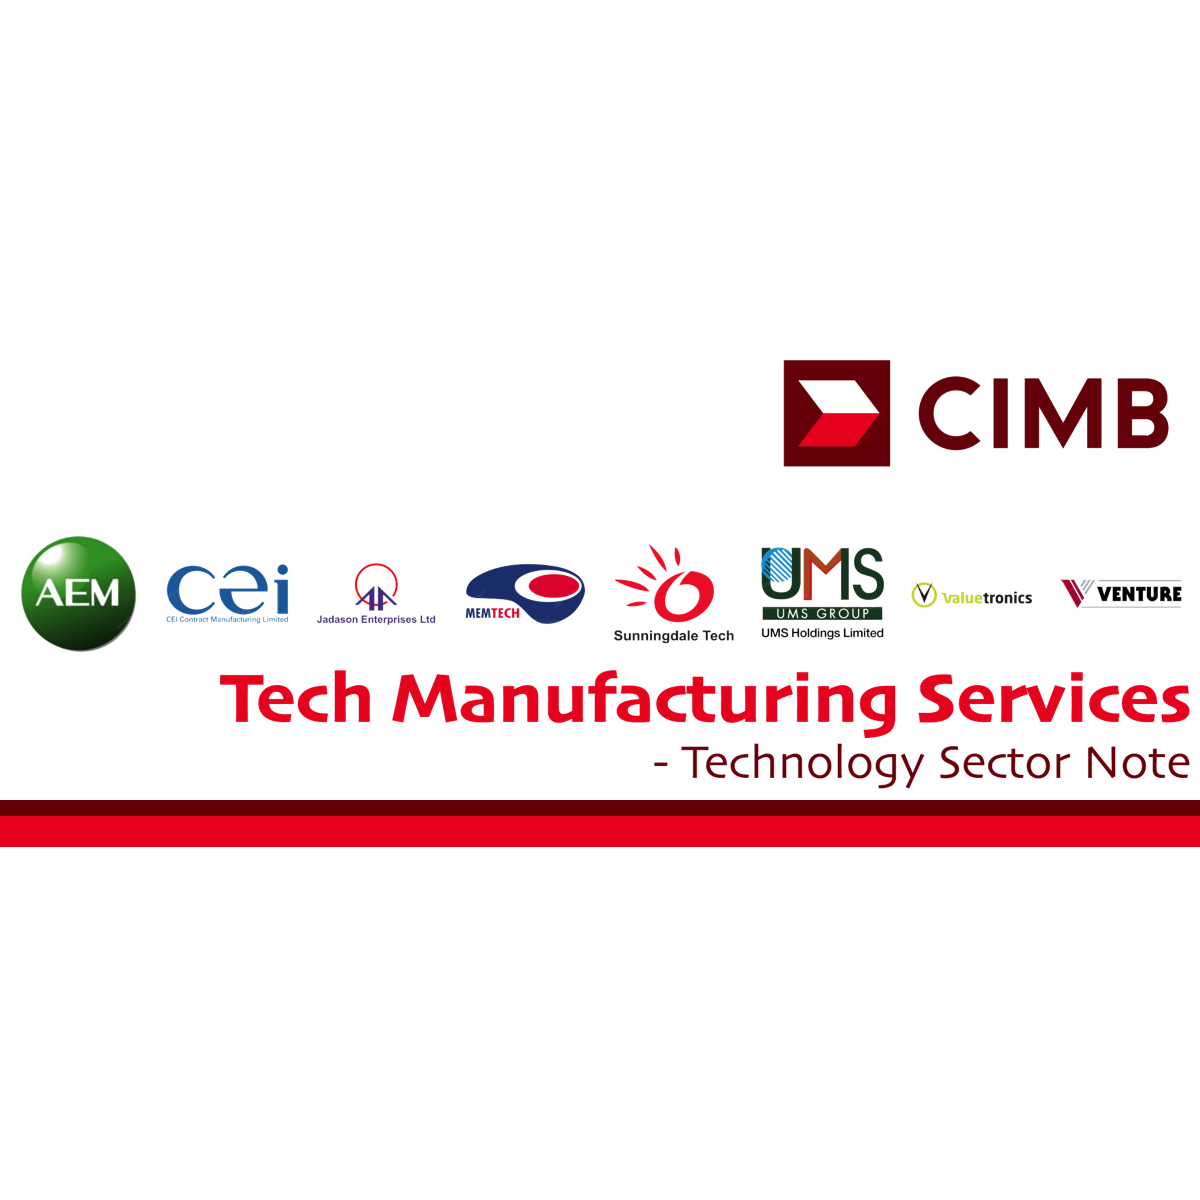 Tech Manufacturing Services Sector - CIMB Research 2017-07-28: All Hail Private Equity